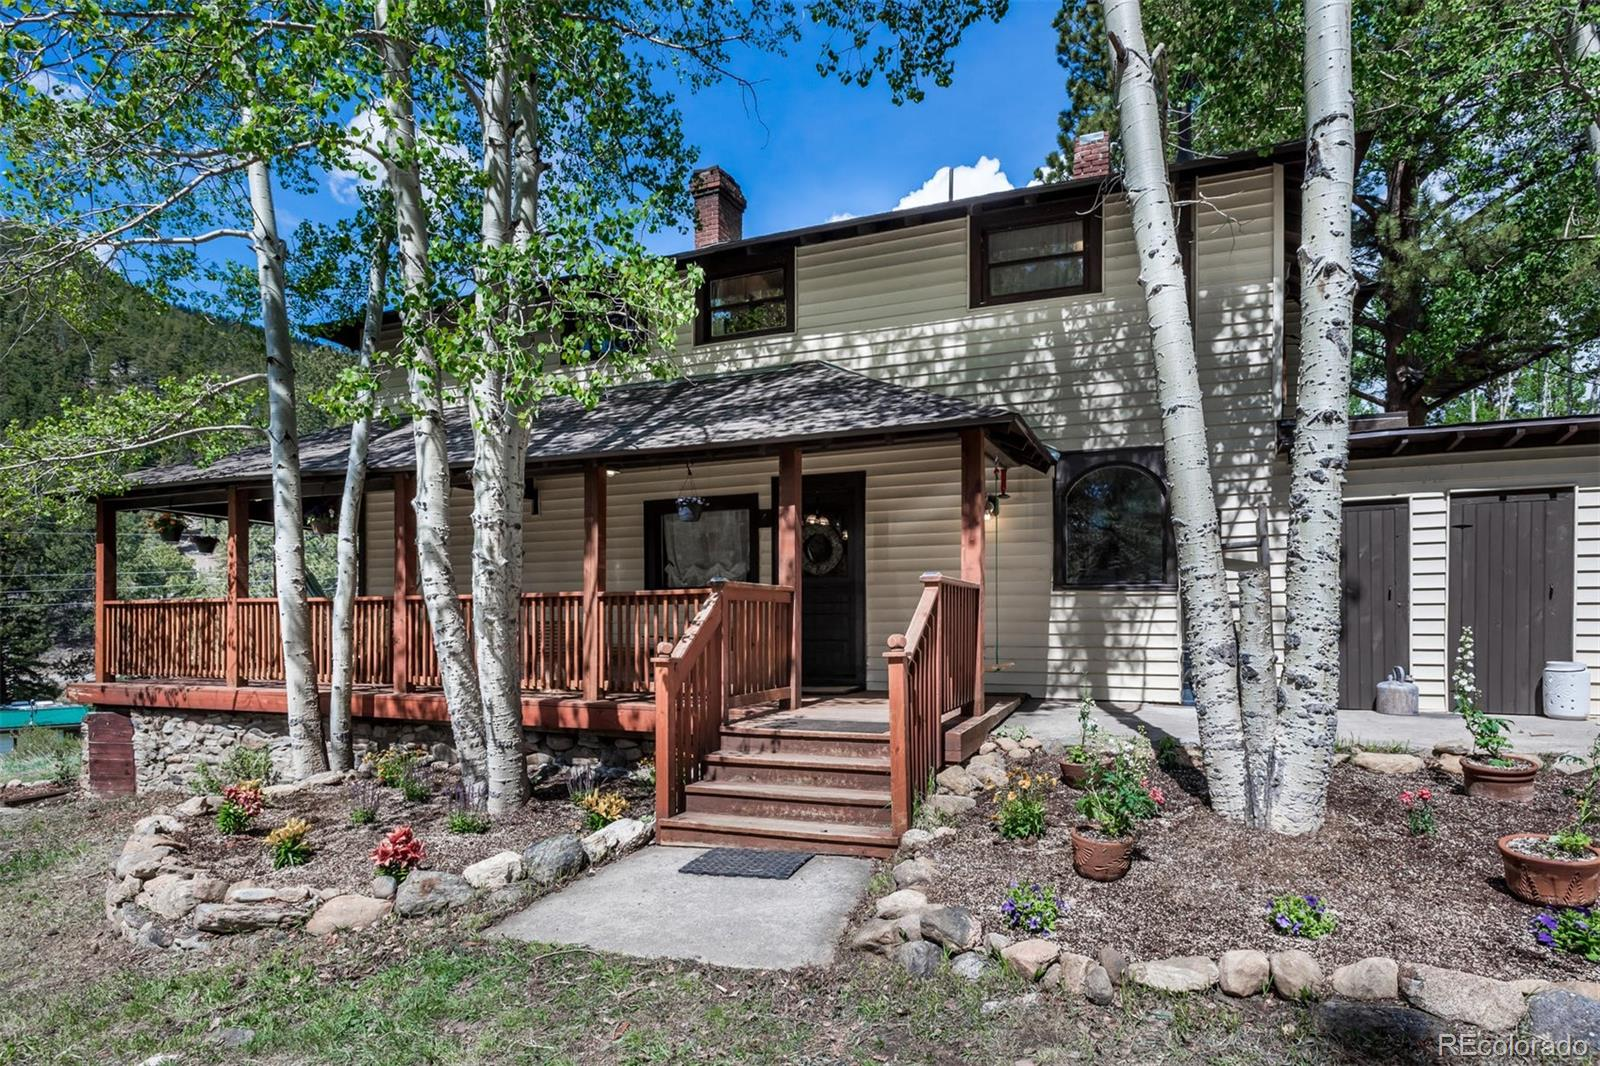 Make Memories* Looking for your dream home.. something different*This charming 4 bedroom/2 bath mountain home living the dream!  Built at the turn of the century with many updates newer roof and 4 bdrm septic system * experience blending the country simplicity of days gone by with all the convenience of today's amenities. Unbelievable wrap around deck * soak in the sunshine, fresh air, and pristine  snow capped mountain views on your expansive covered romantic  porch. Seasonal creek and small pond on the property * cottage shed or playhouse*. Easily fish the North Fork of the South Platte River via the community area in Bellford Mountain Heights* no fees *See supplements for special glimpse of history * New wood flooring on main level*new woodstove and 